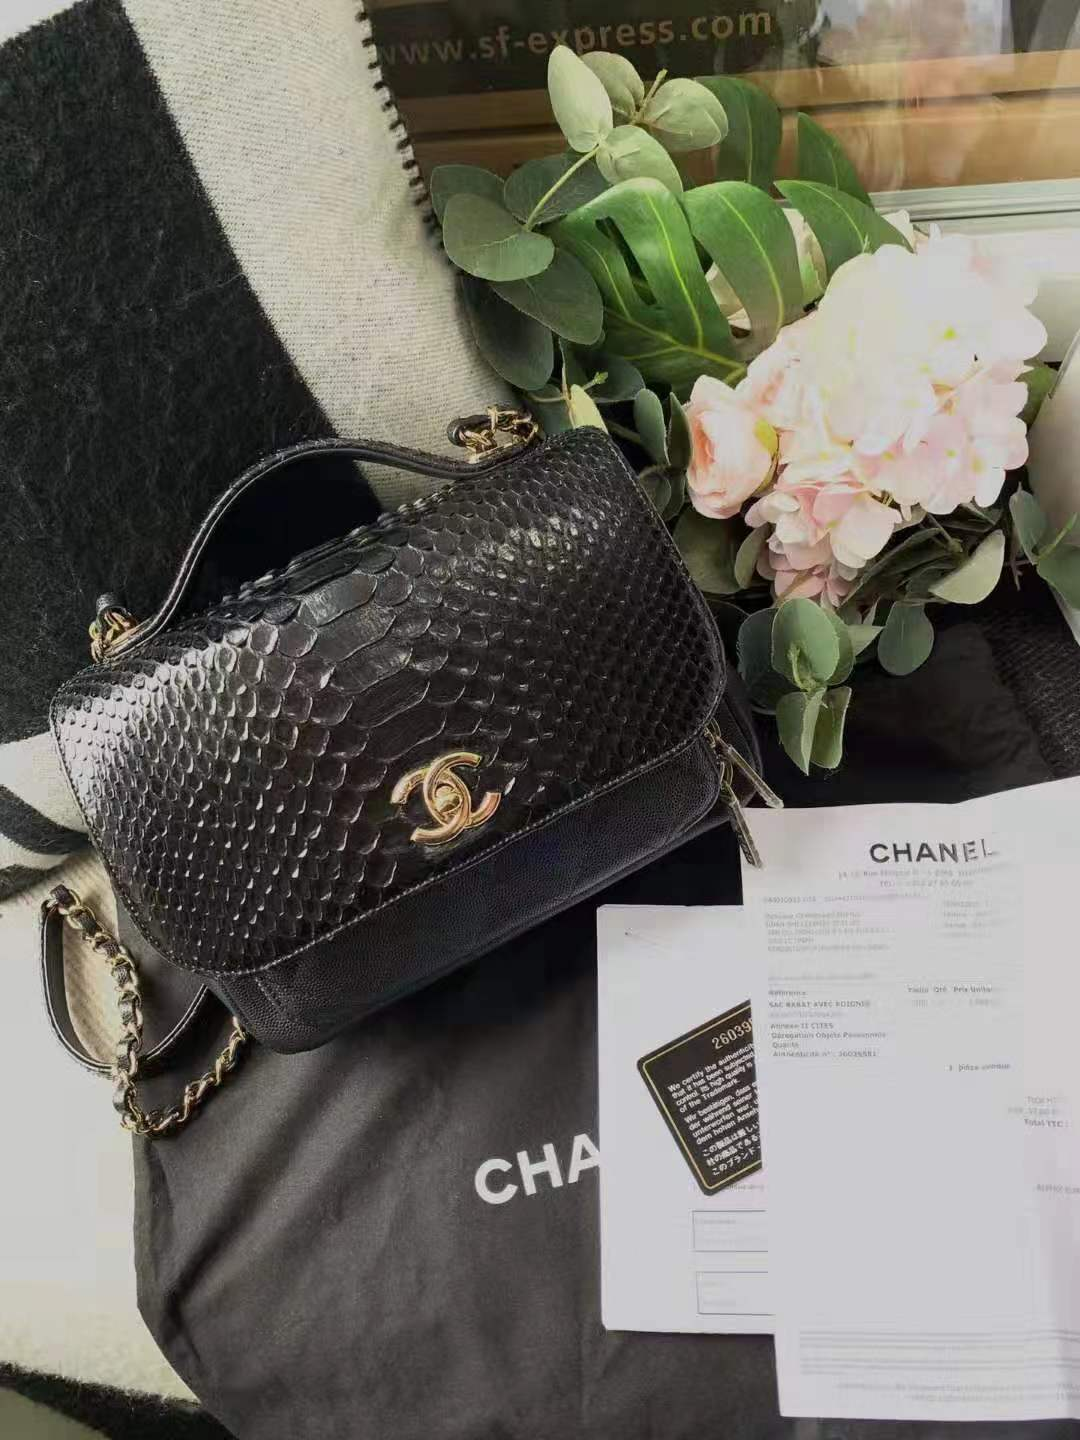 AUTH NEW CHANEL BLACK RARE PYTHON AFFINITY FLAP BAG  2 WAY HANDLE BAG RECEIPT